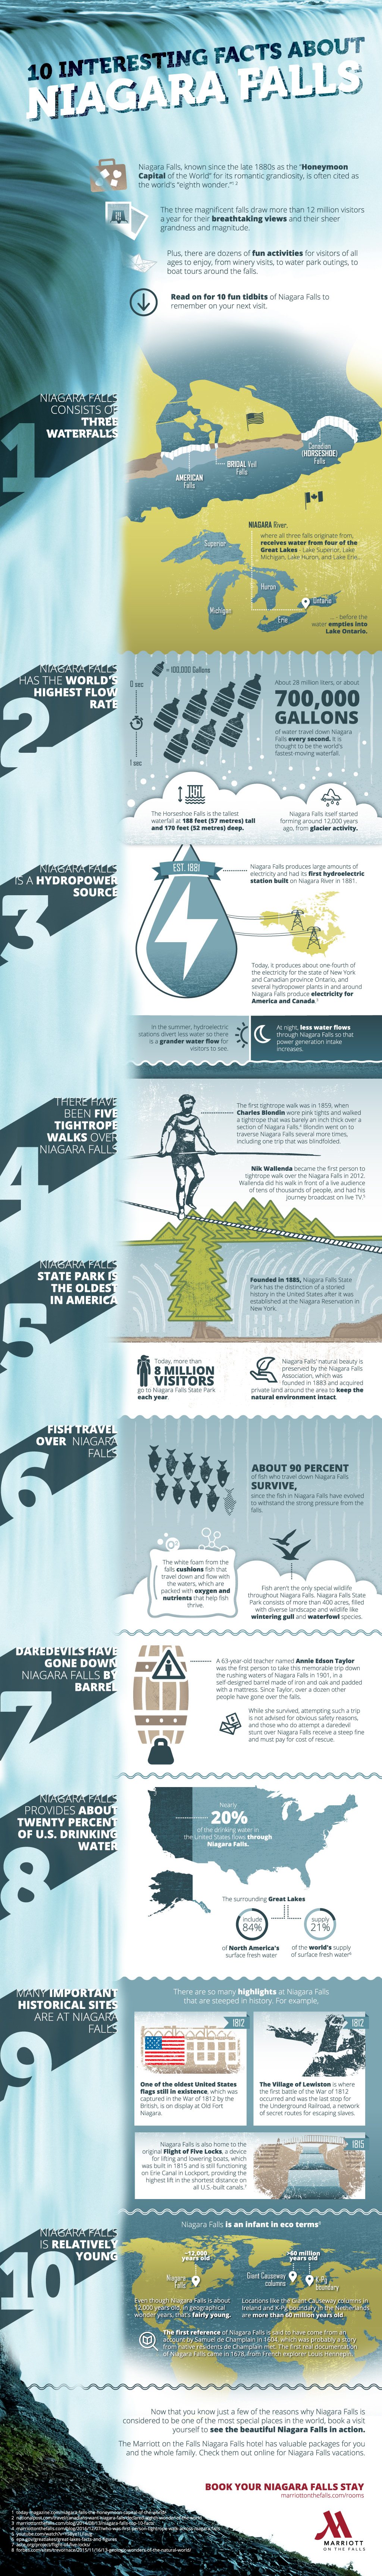 10 Interesting Facts About Niagara Falls Infographic